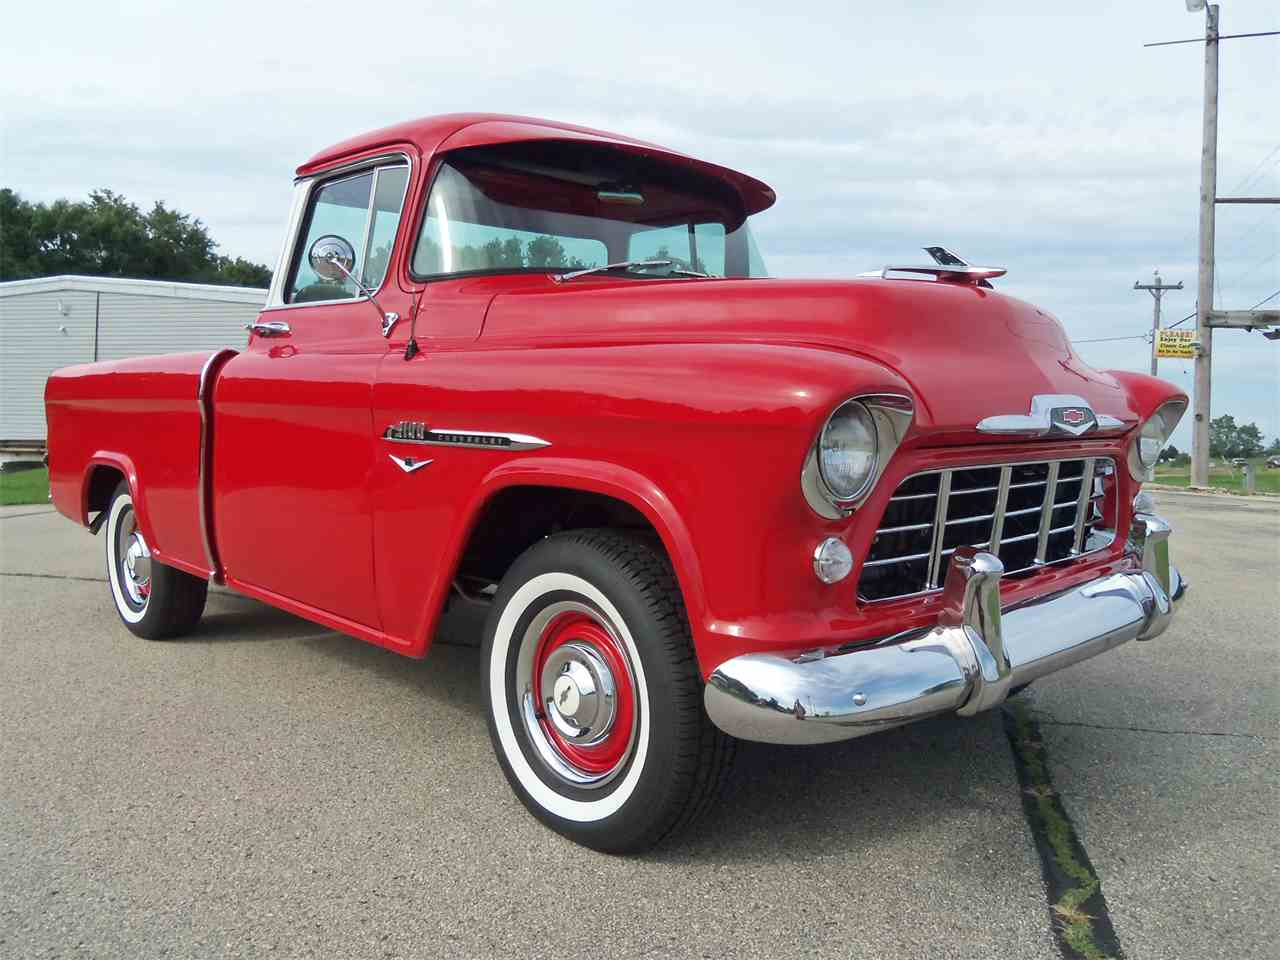 1956 Chevrolet Pickup for Sale on ClassicCars.com